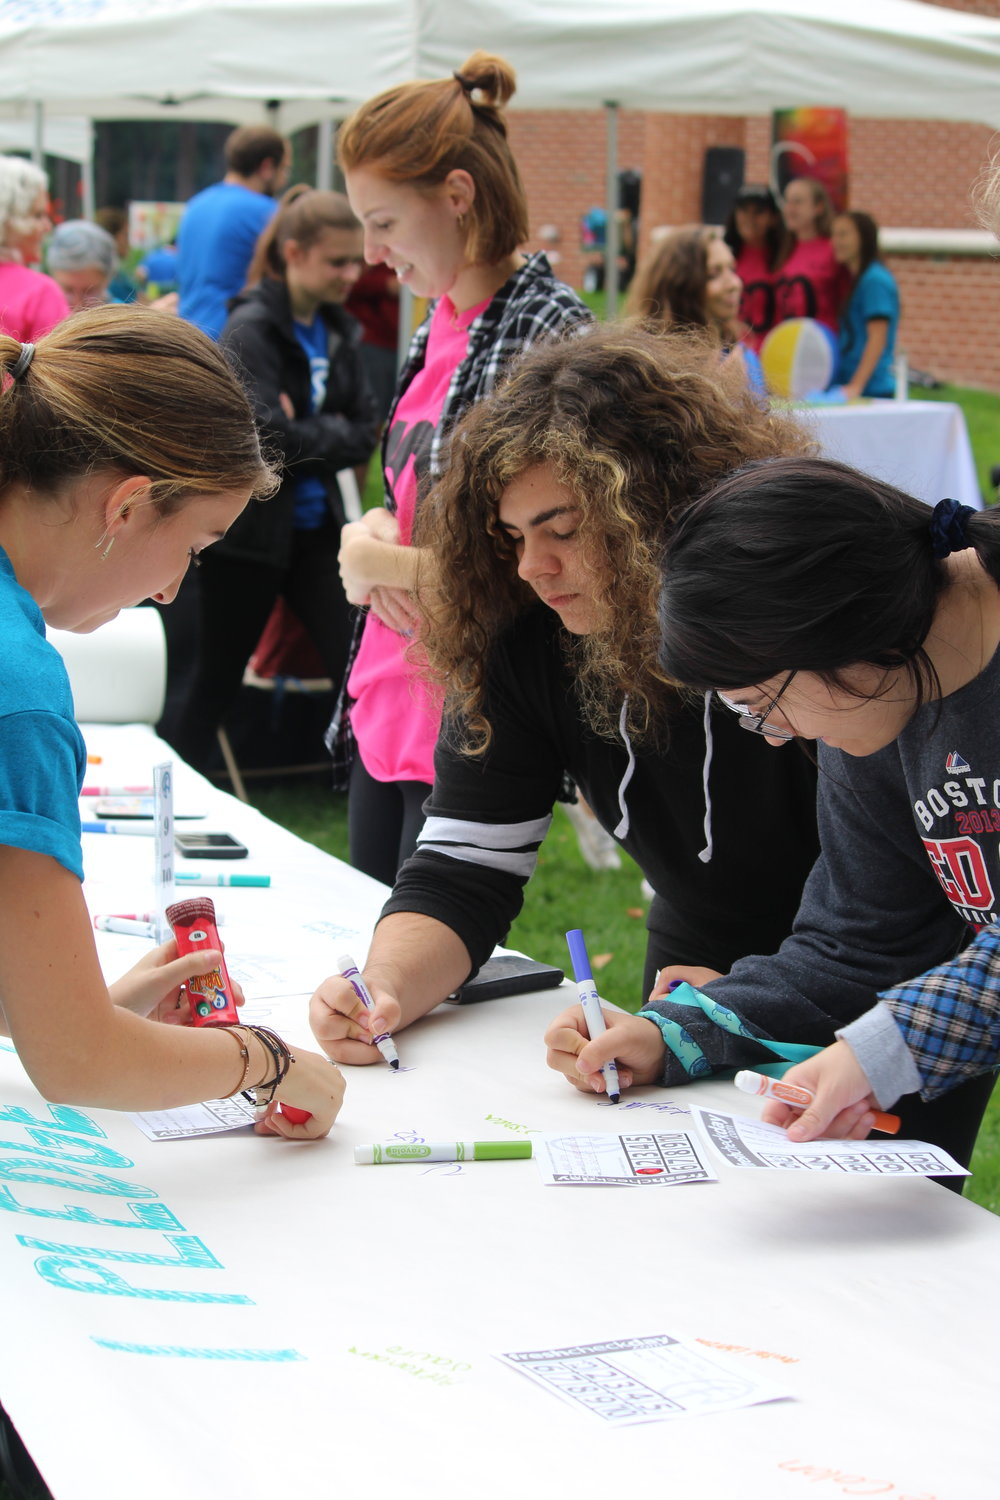 Students sign the 9 out of 10 pledge.